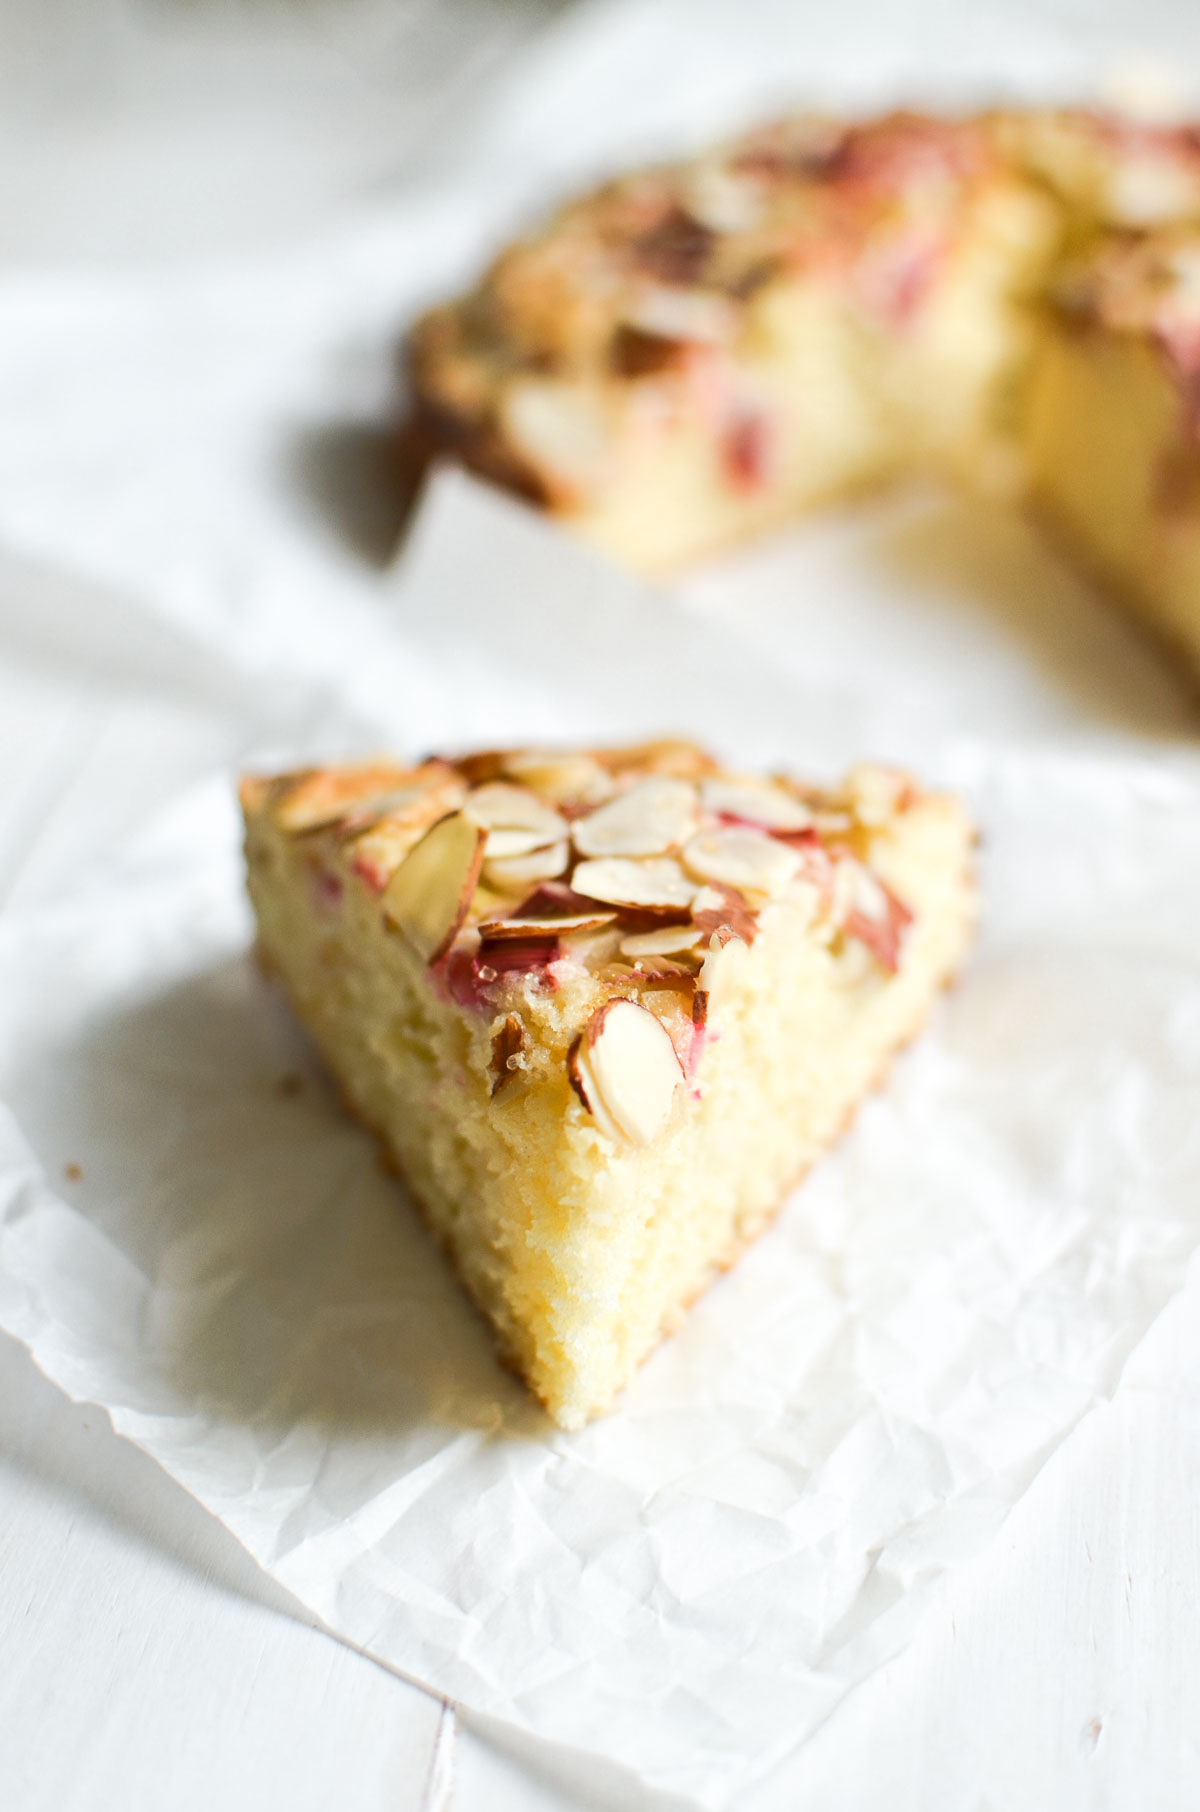 A slice of rhubarb cake on a piece of parchment paper